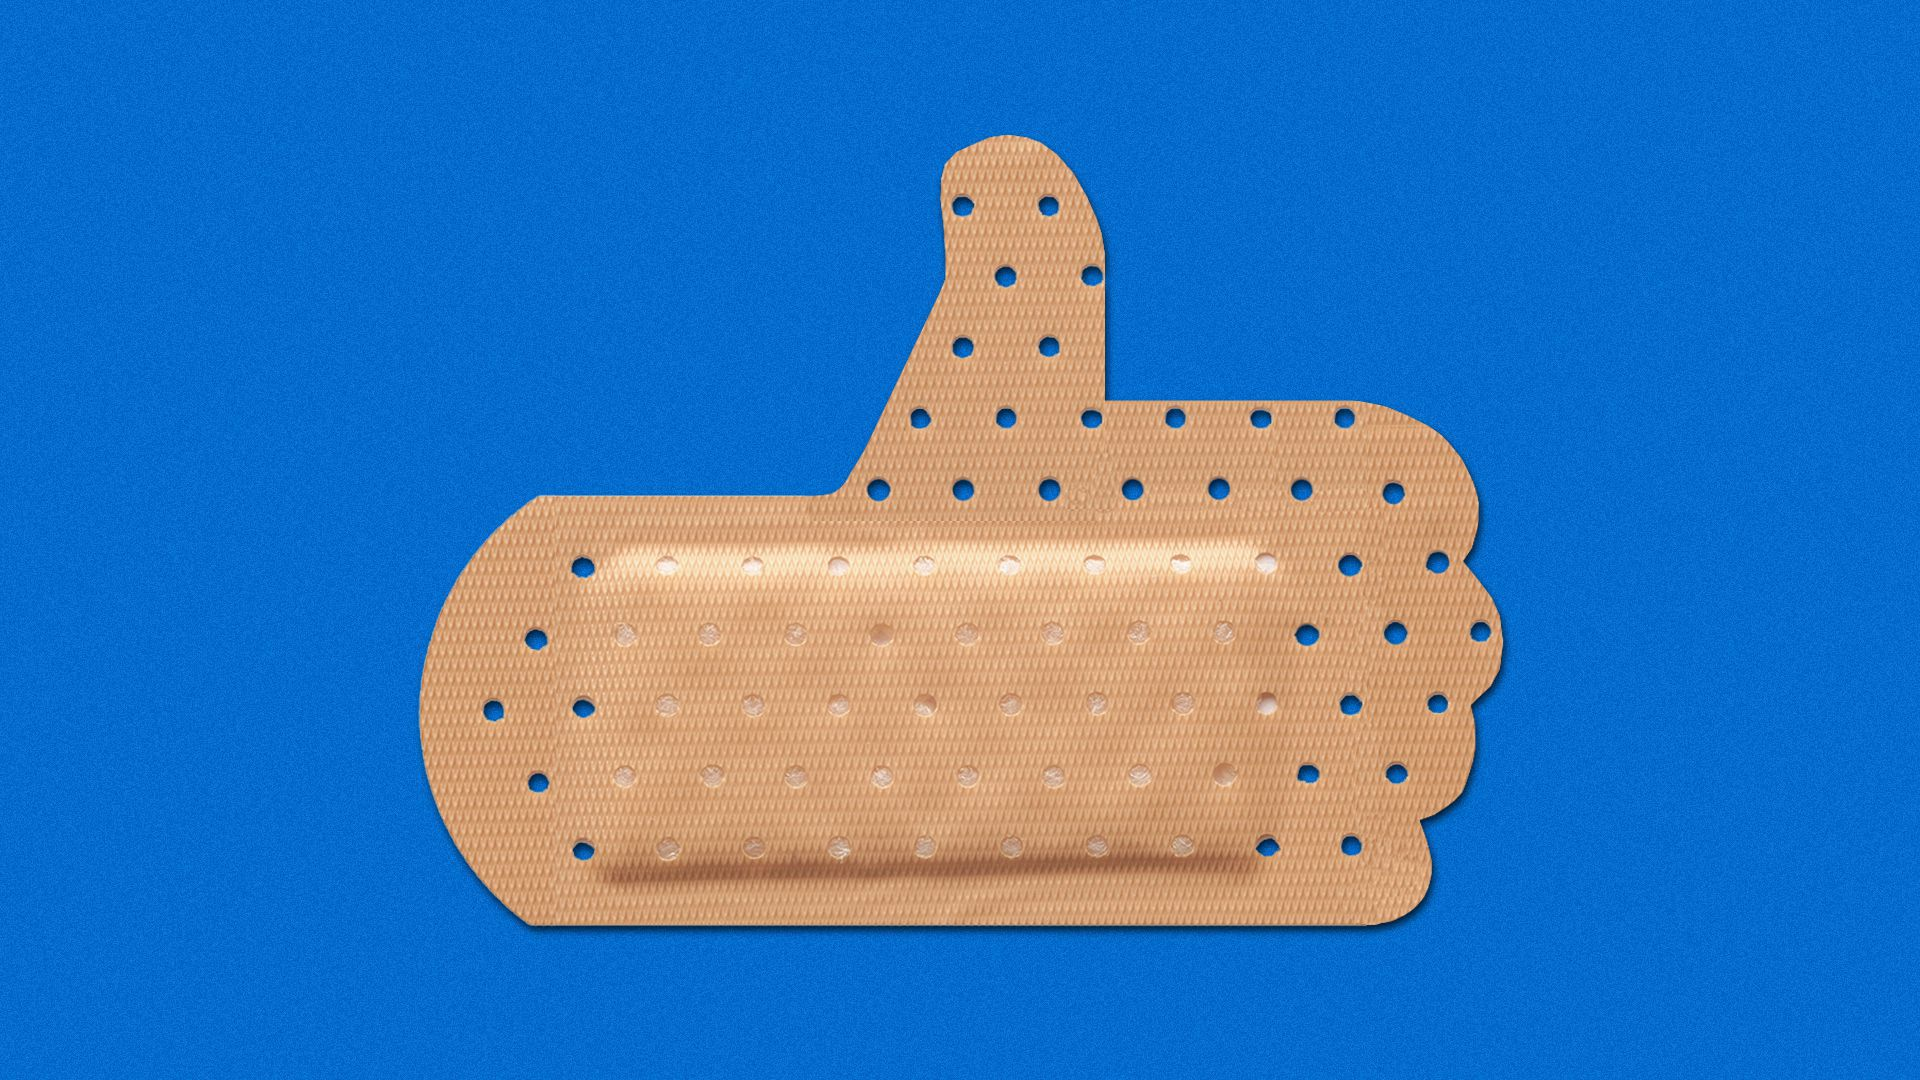 Illustration of a band-aid in the shape of a thumbs up